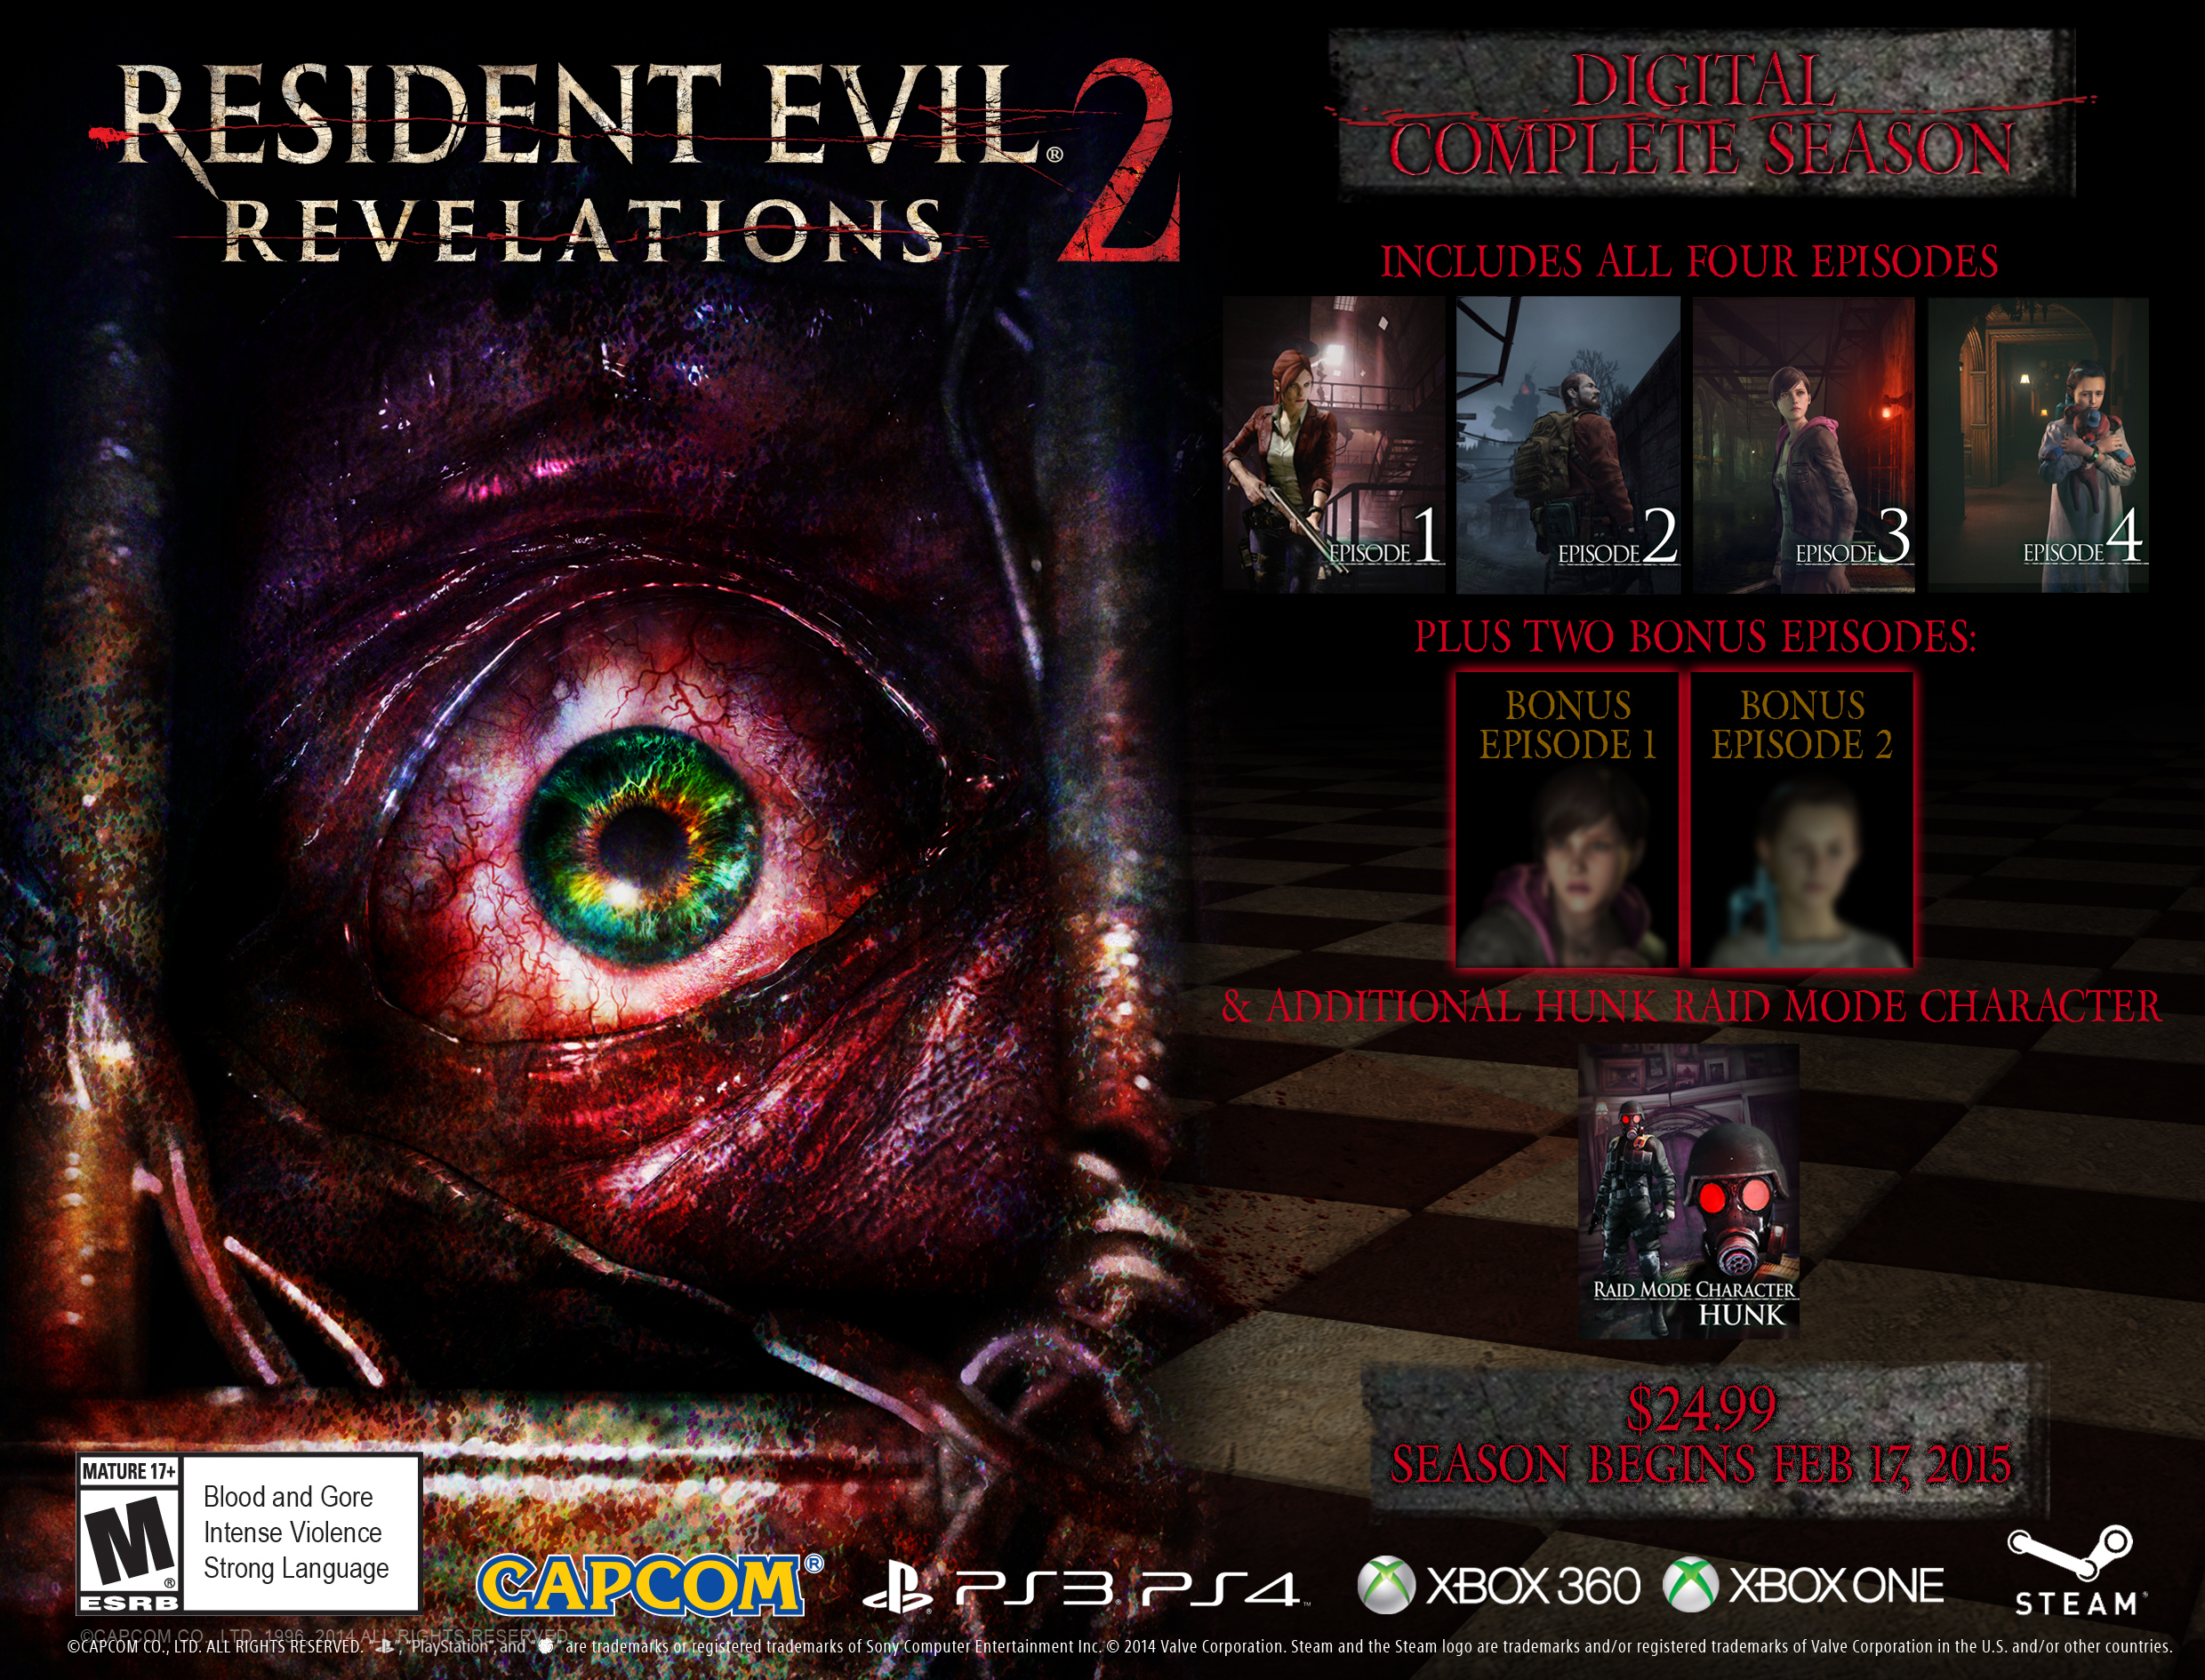 Resident-Evil-revelations-2-complete-season-beauty2